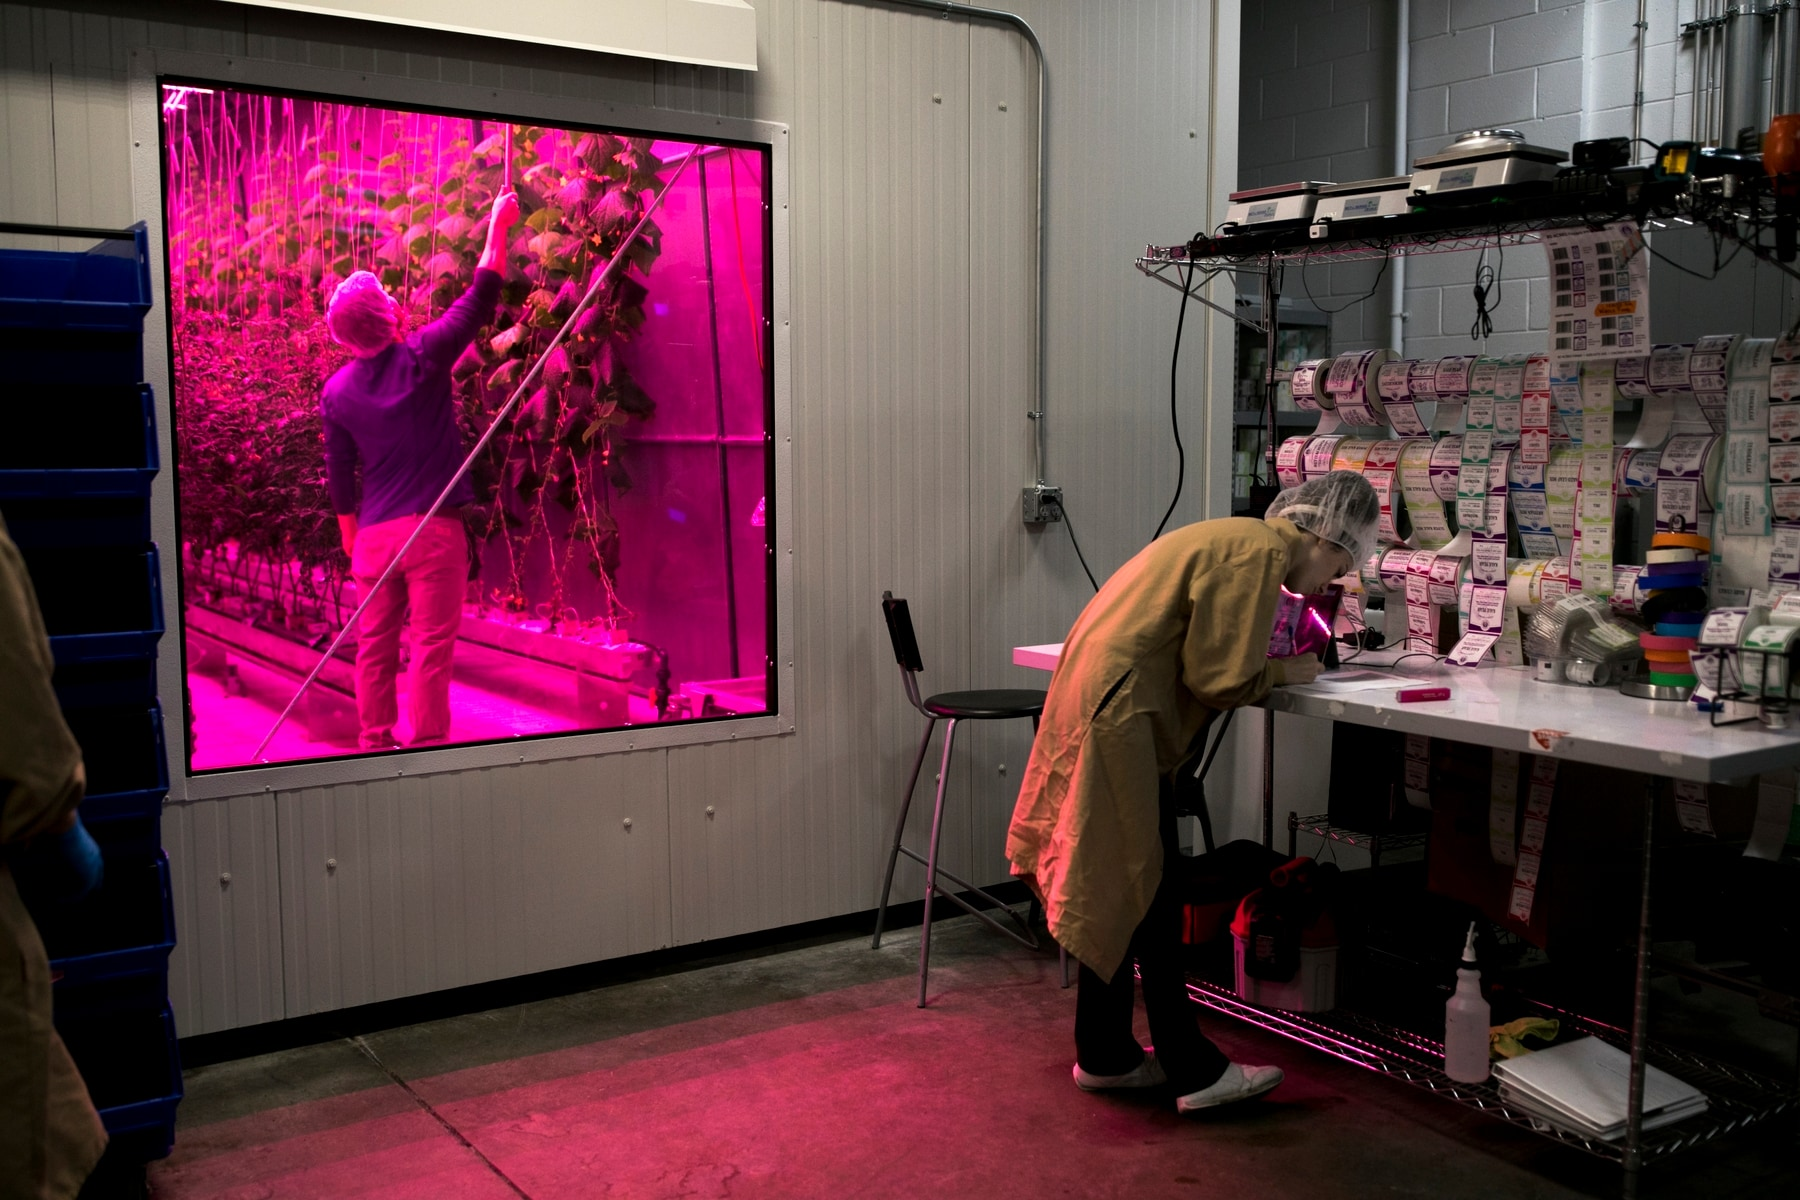 David Litvin, left, inspects vine crops while farm operations tech Devon Brown prepares labels for retail packaging. (Maddie McGarvey/For The Washington Post)